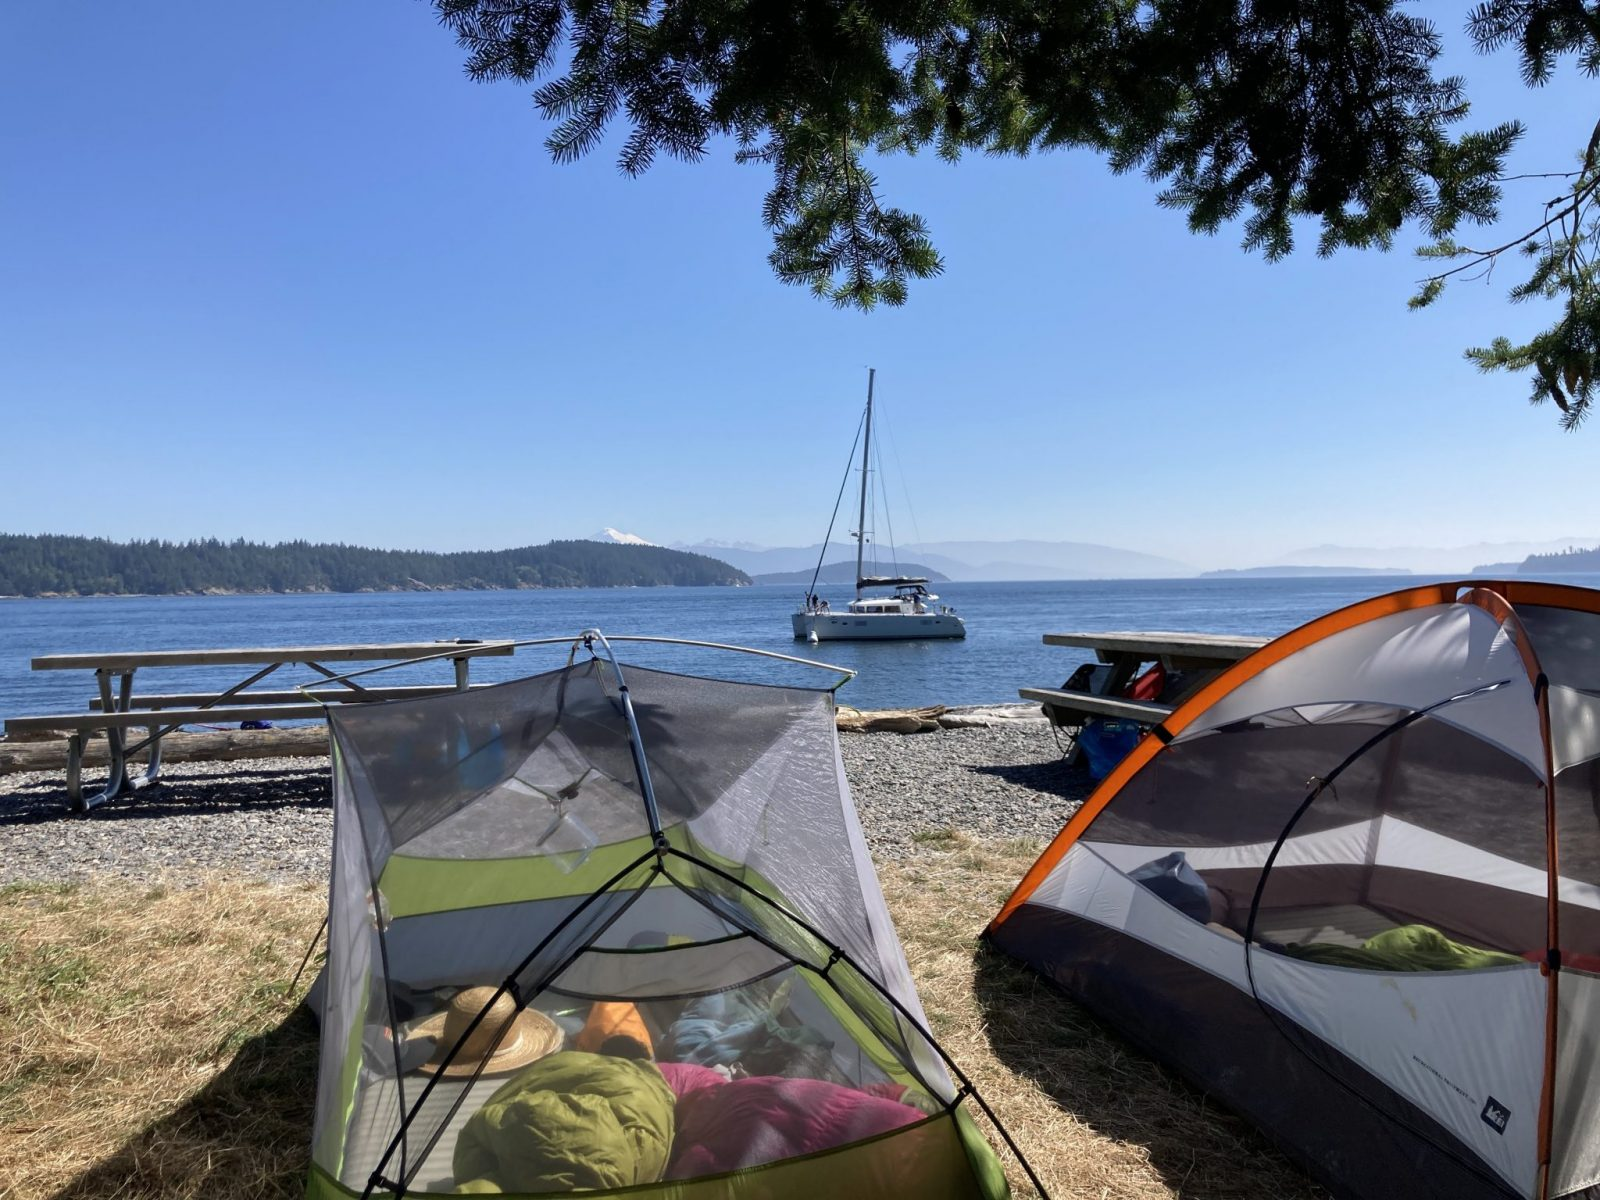 Camping in the San Juan Islands at Pelican Beach. There are two tents with their rain flies off to catch the sun. There are picnic tables and a rocky beach in background. A sailboat is anchored just off shore. In the distance are forested islands and a high snow covered mountain.